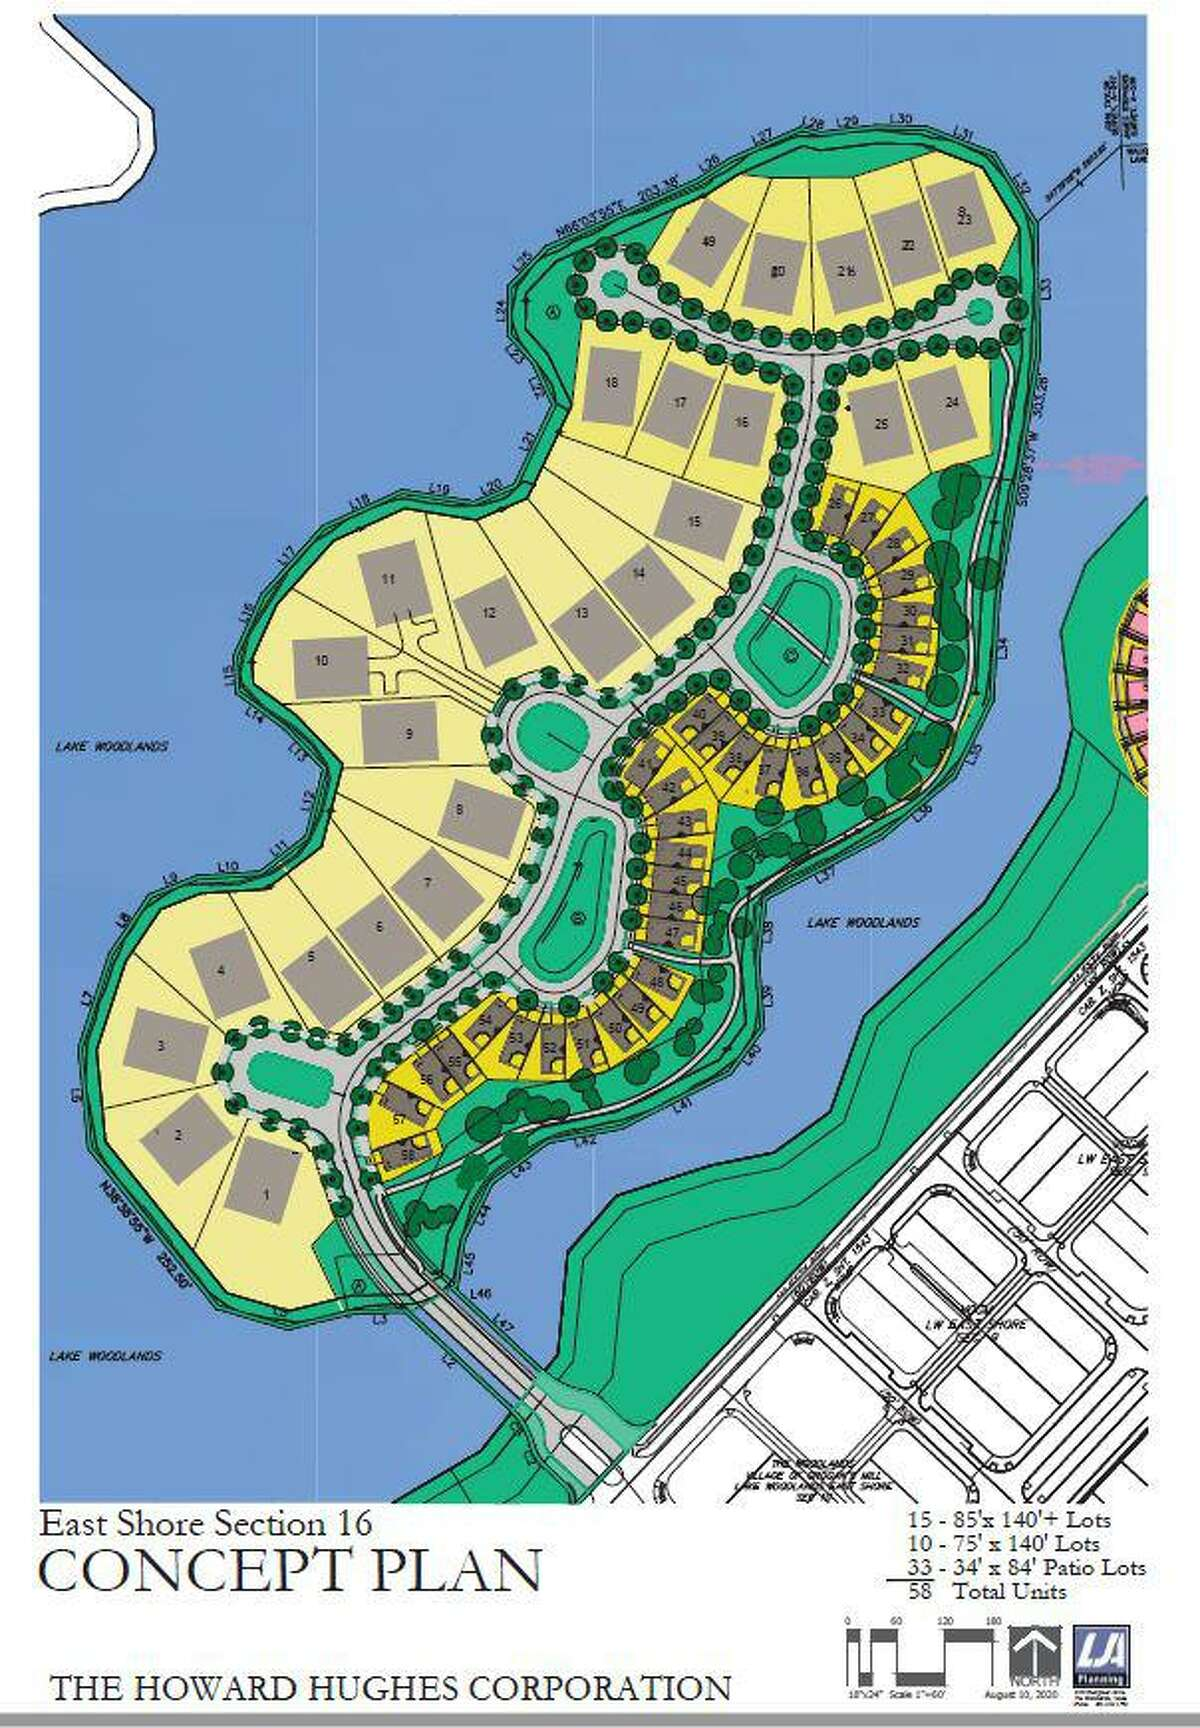 Officials from the Howard Hughes Corp., which owns the island, had at first attempted to push through a plan for 58 homes on the township's only island, located off the west side of the East Shore neighborhood in Lake Woodlands. Those plans were at the Houston Planning Commission when local residents began to protest the expansion of development on the island that has sat vacant since its creation in 1986. Now, under the Nov. 4 ILUD change approved by the township's Development Standards Committee, a maximum of 30 homes will be constructed.